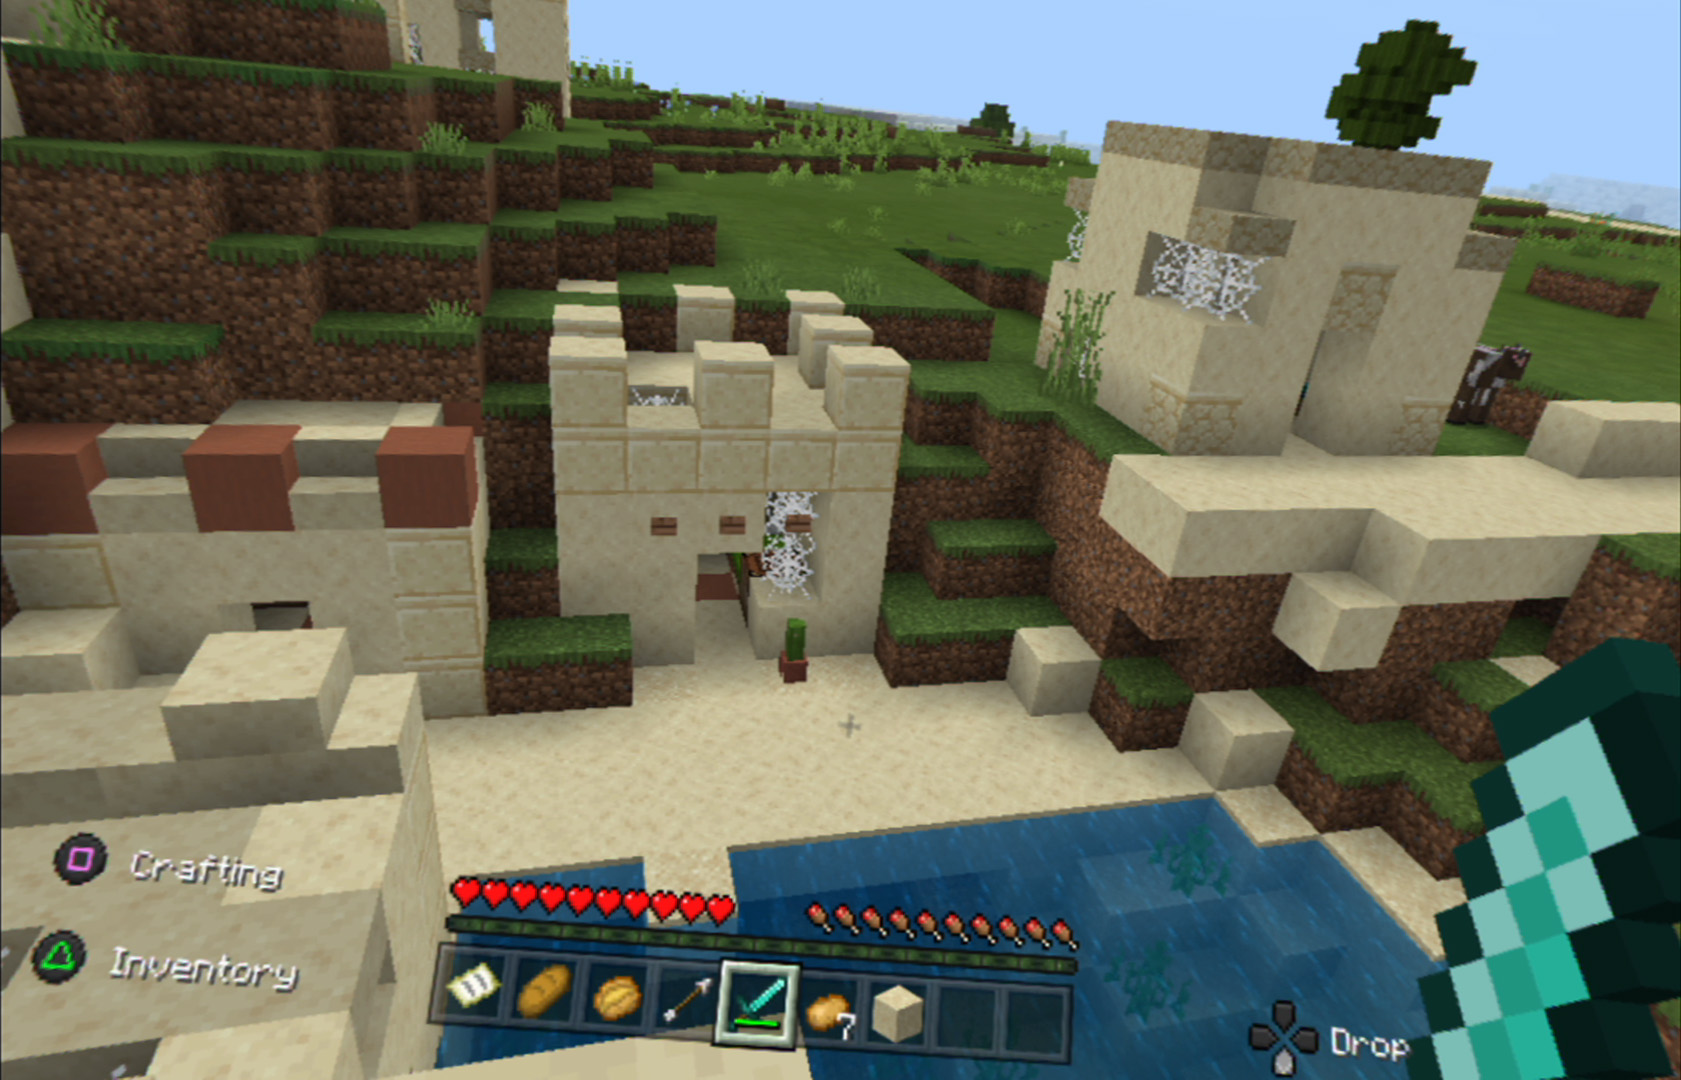 Minecraft is Coming to PlayStation VR This Month